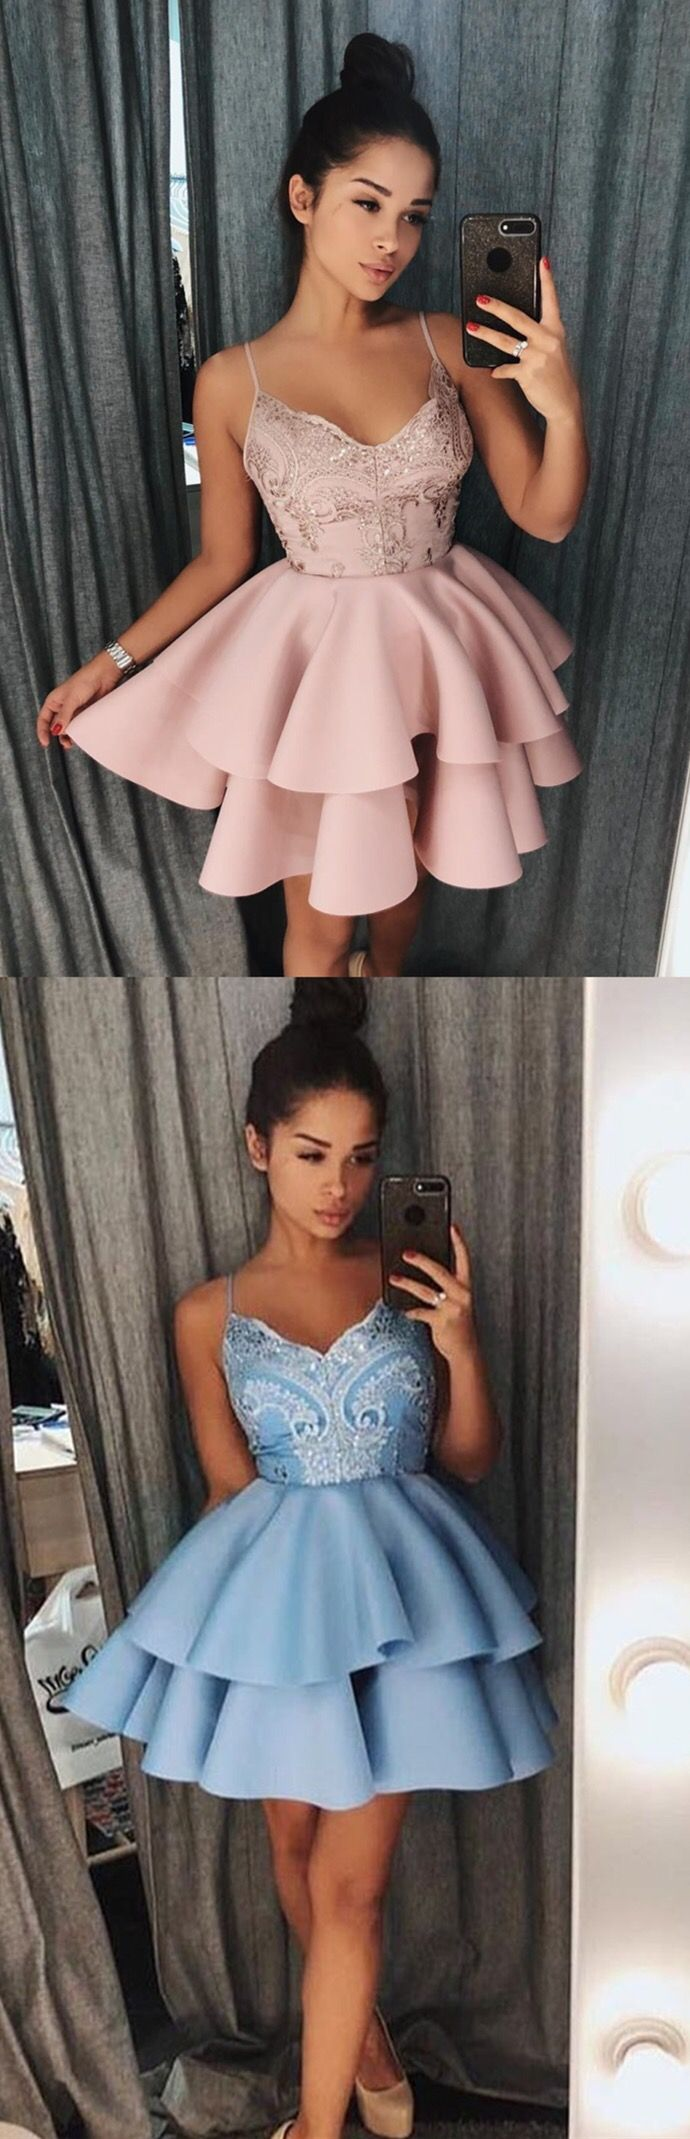 addb6083c59 A-Line Spaghetti Straps White Short Homecoming Prom Dress with ...